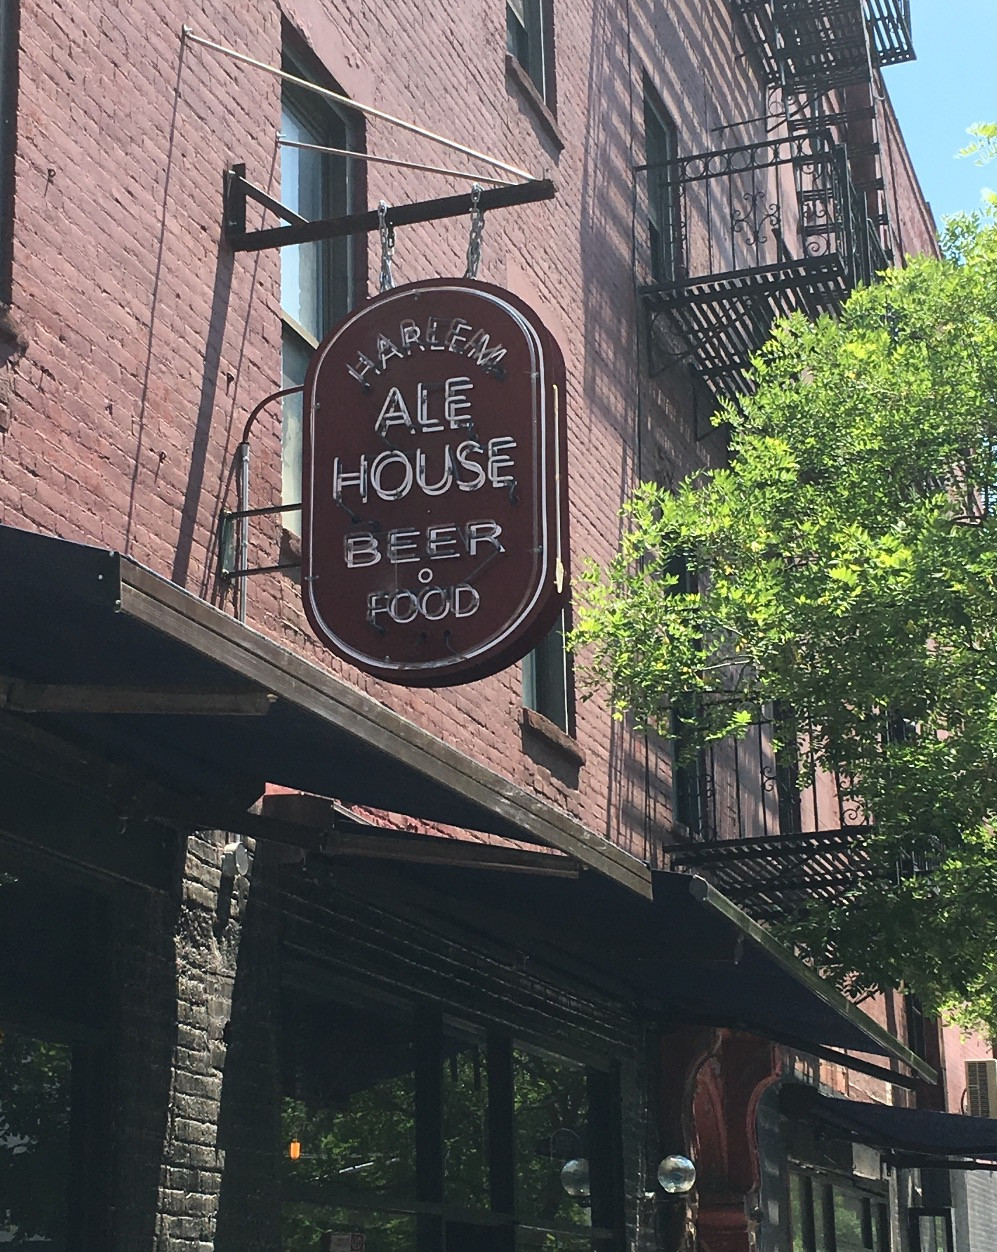 Harlem Ale House on 127th Street in Harlem